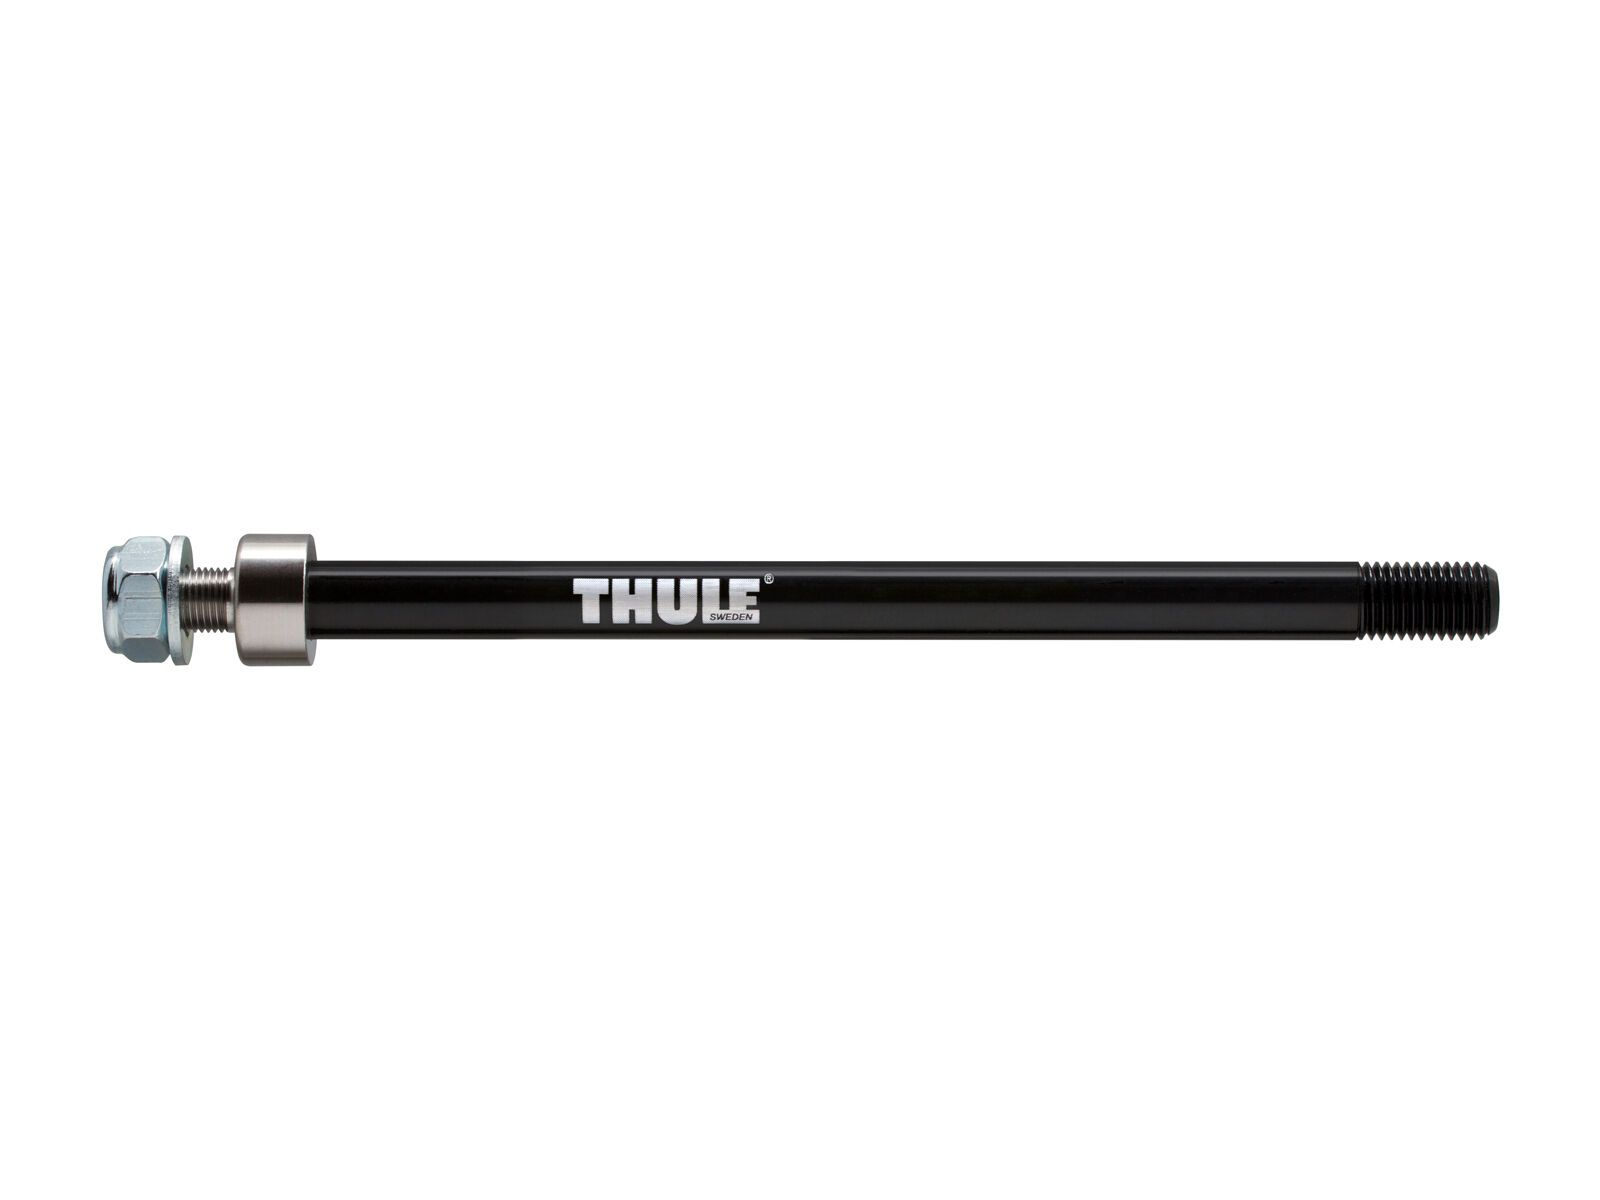 Thule Thru Axle Syntace (M12 x 1.0) 217 oder 229 mm // Fatbike 20110737